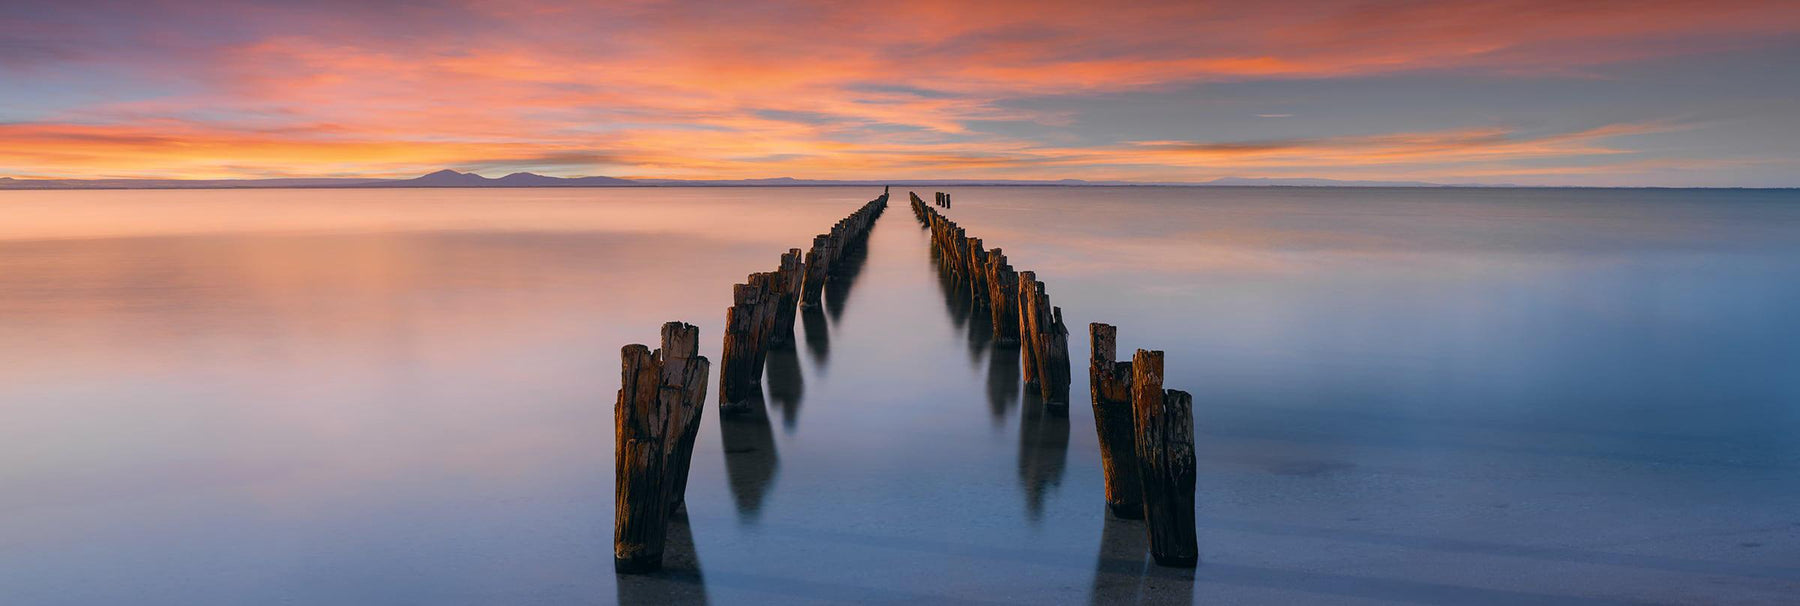 Remains of an old wooden jetty leading into a bay in Victoria Australia at sunset